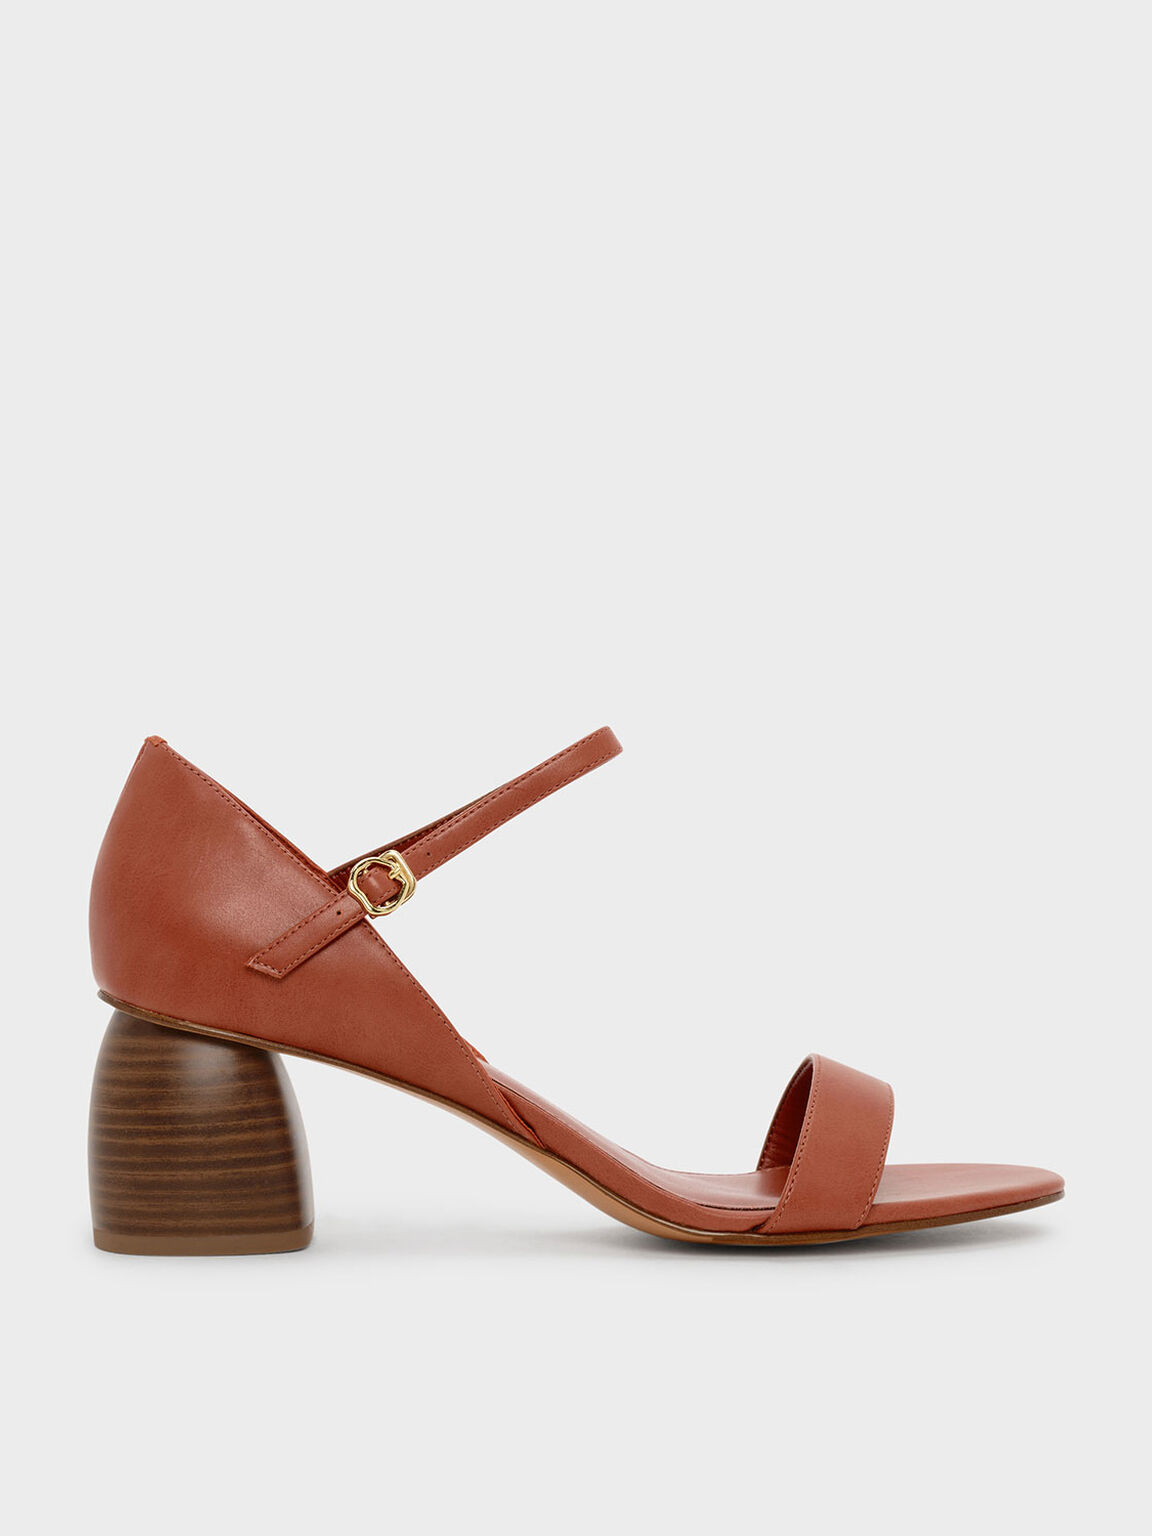 Stacked Heel Sandals, Orange, hi-res